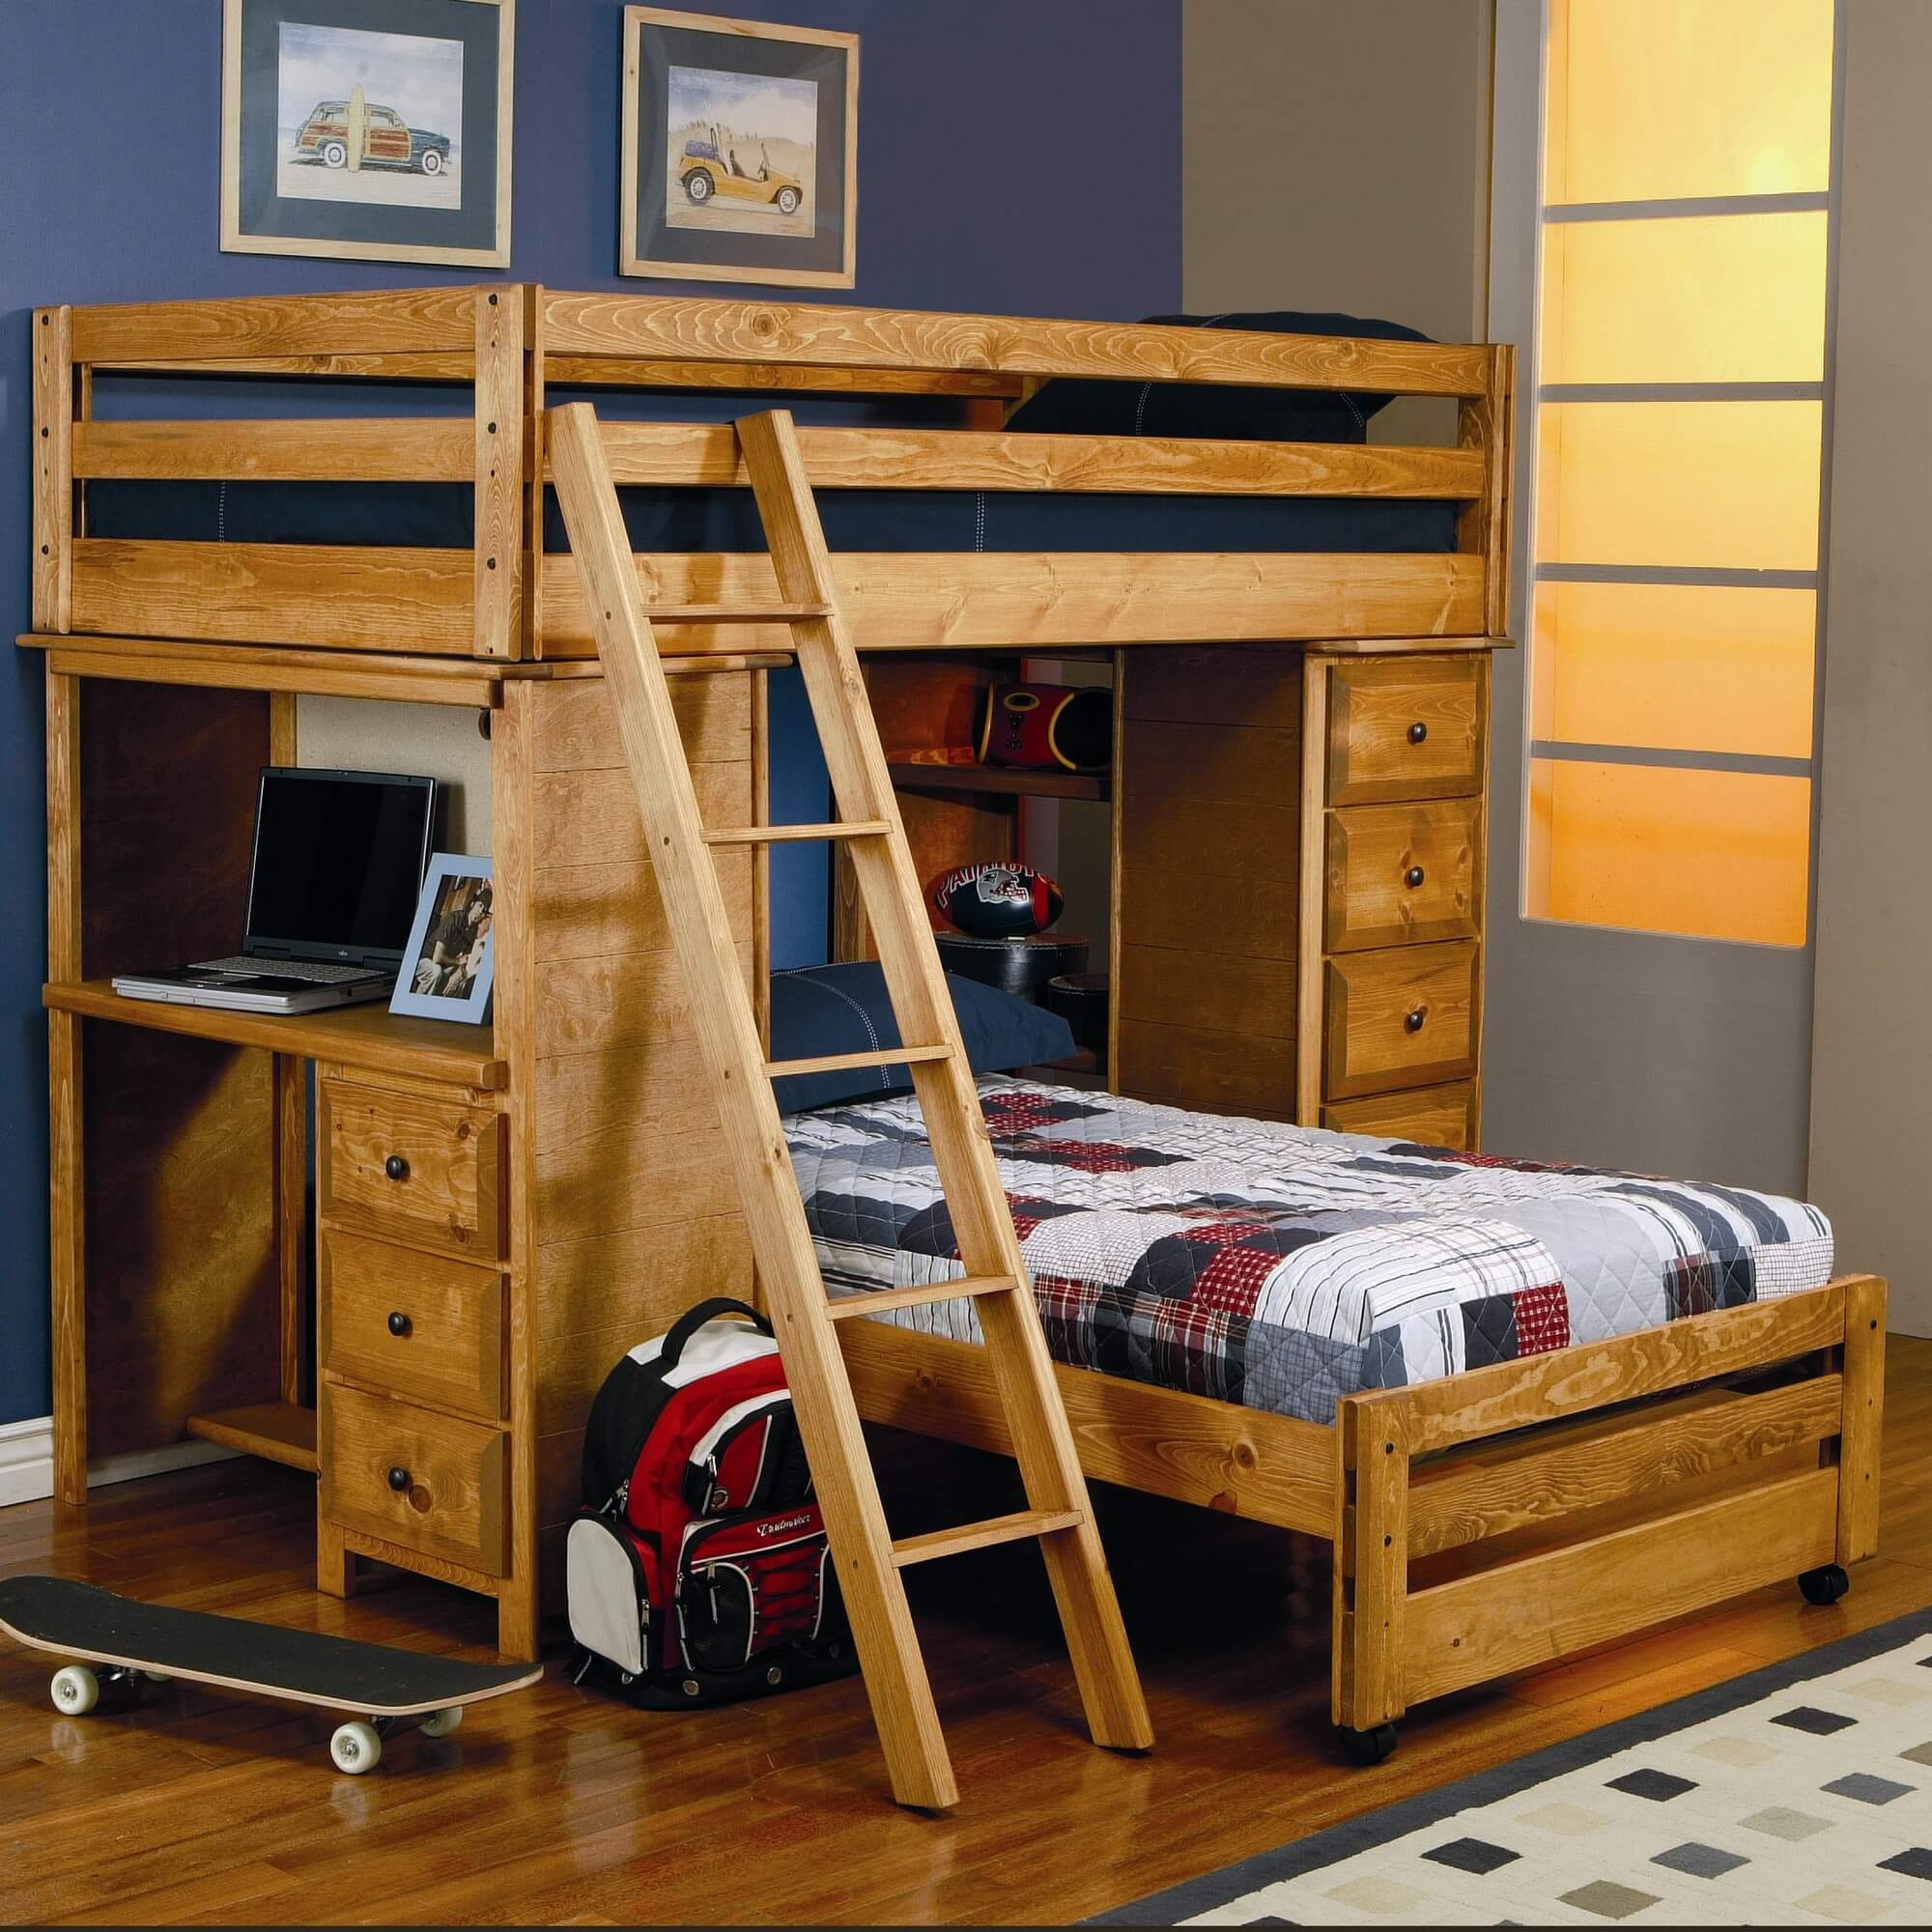 Bunk bed with desk underneath plans - Bunk Bed With Desk Underneath Plans 18